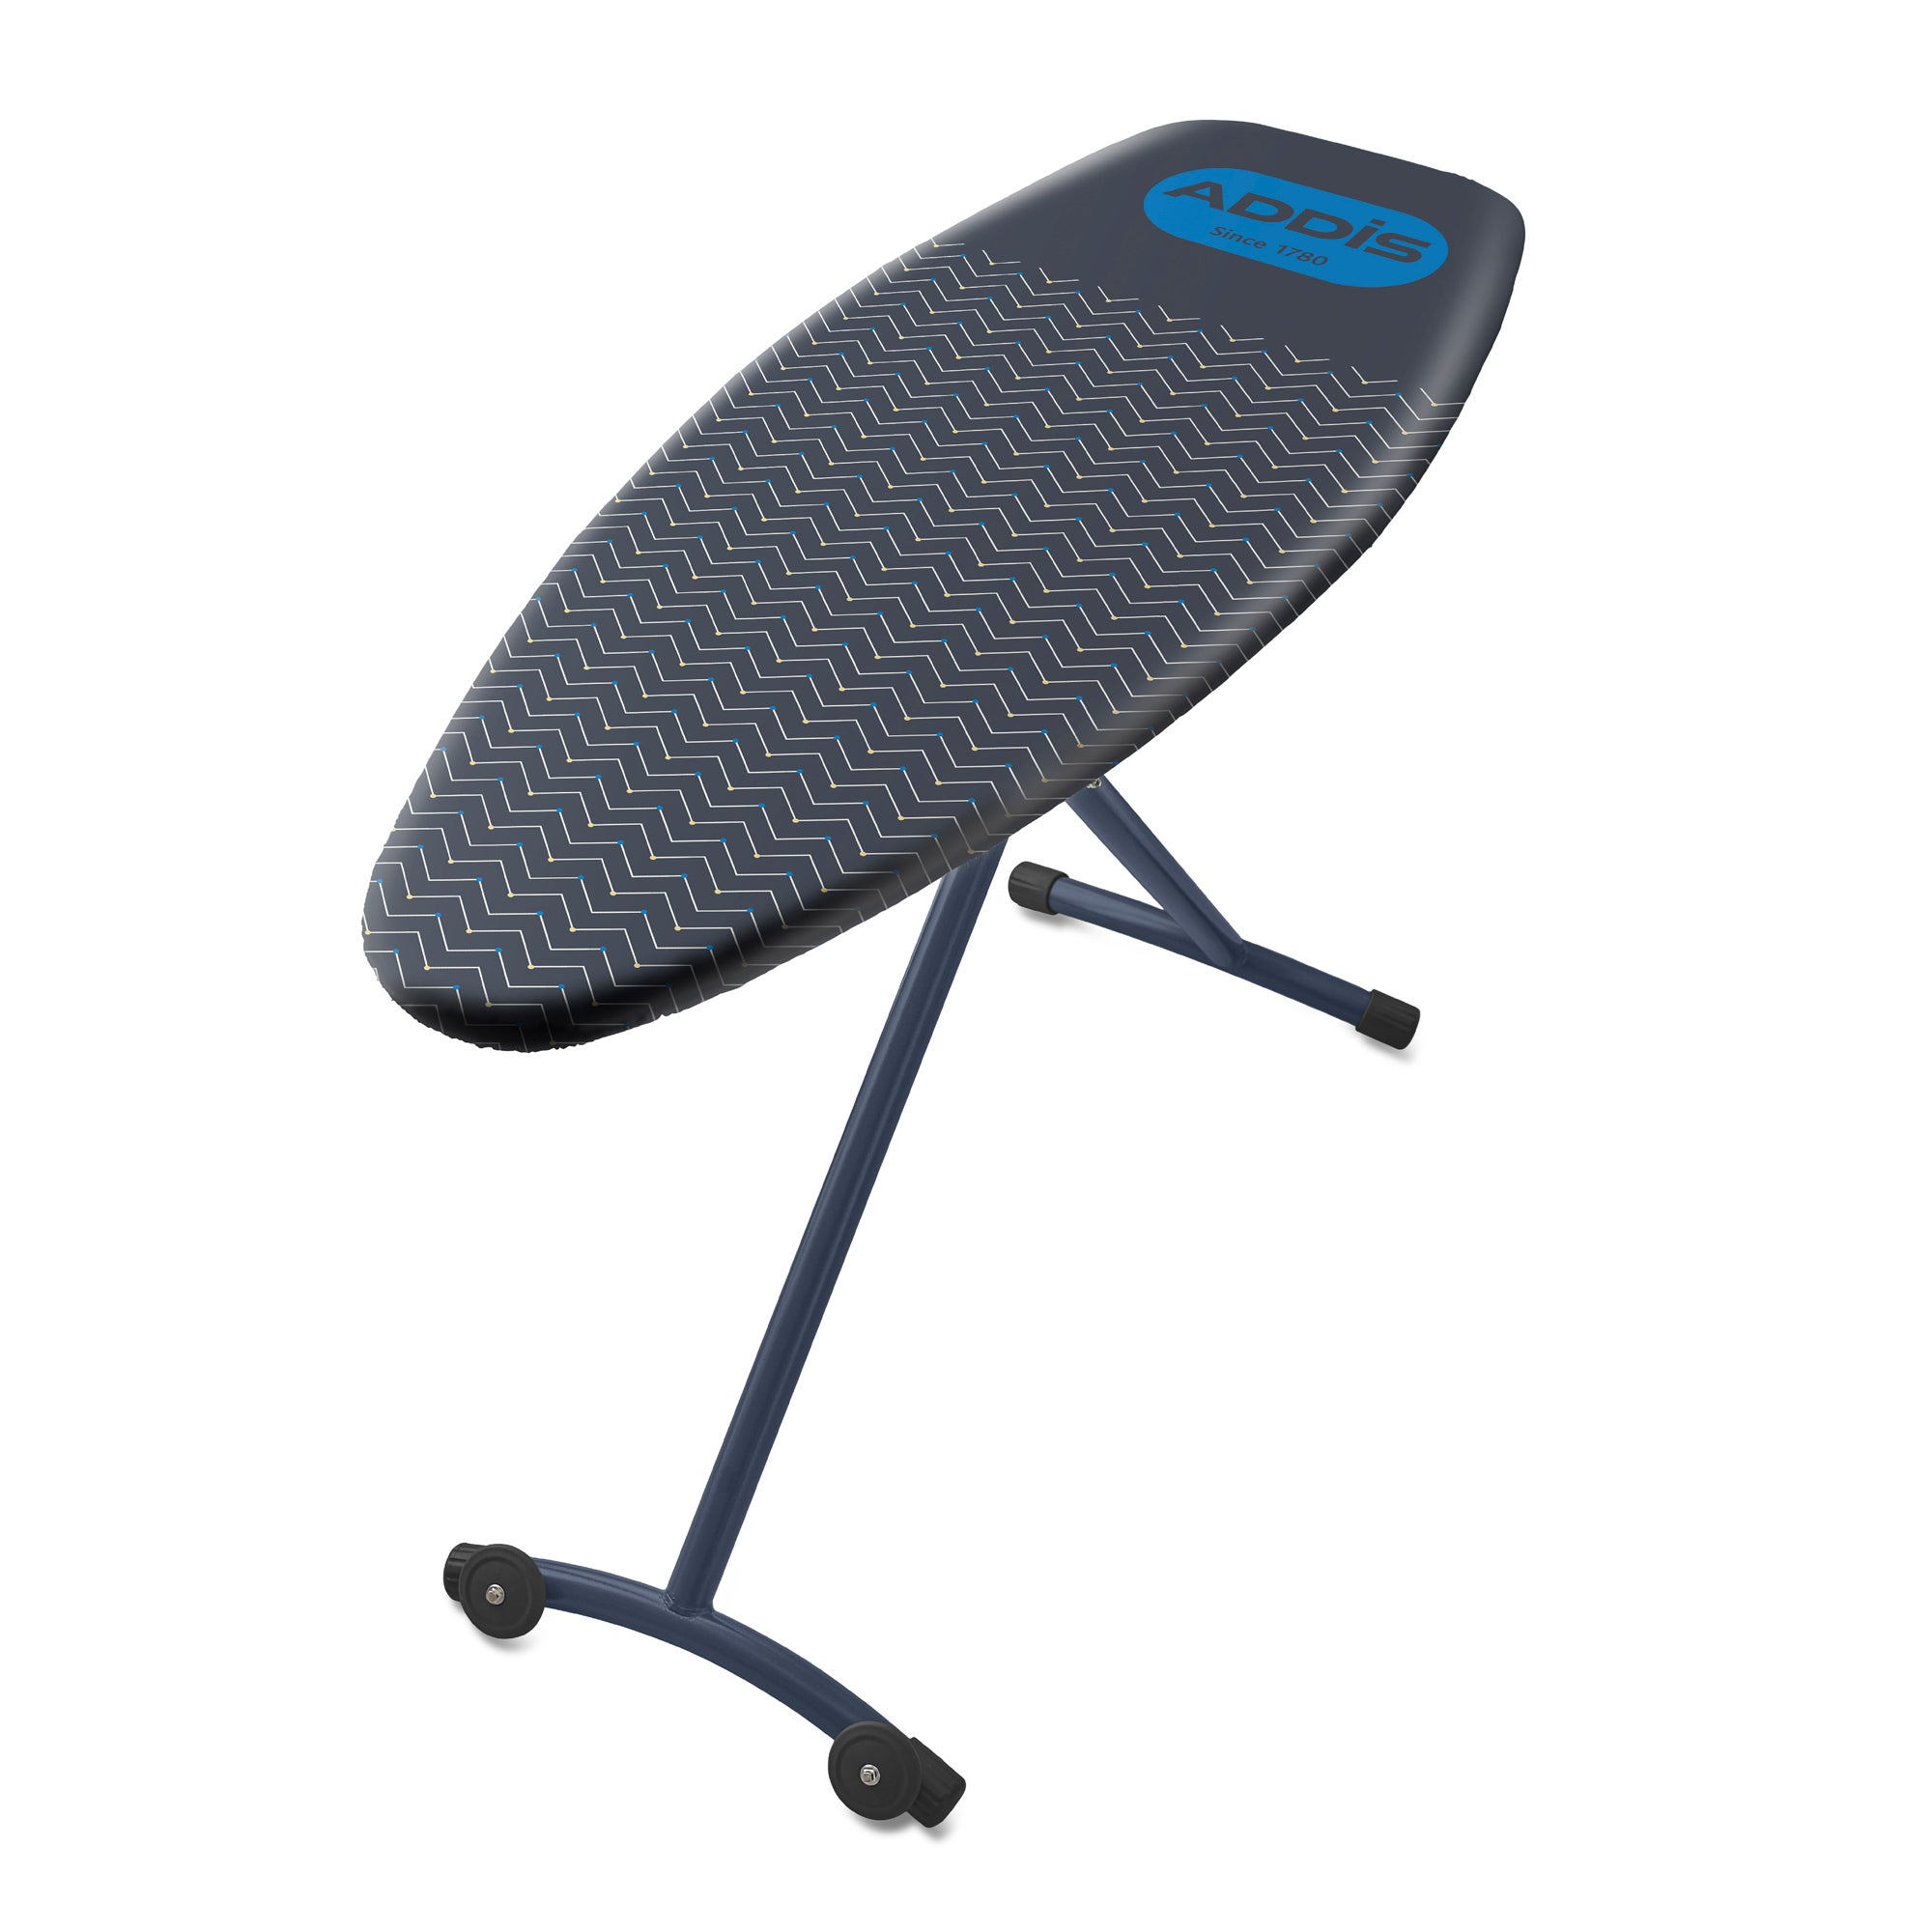 Addis Deluxe Ironing Board Black